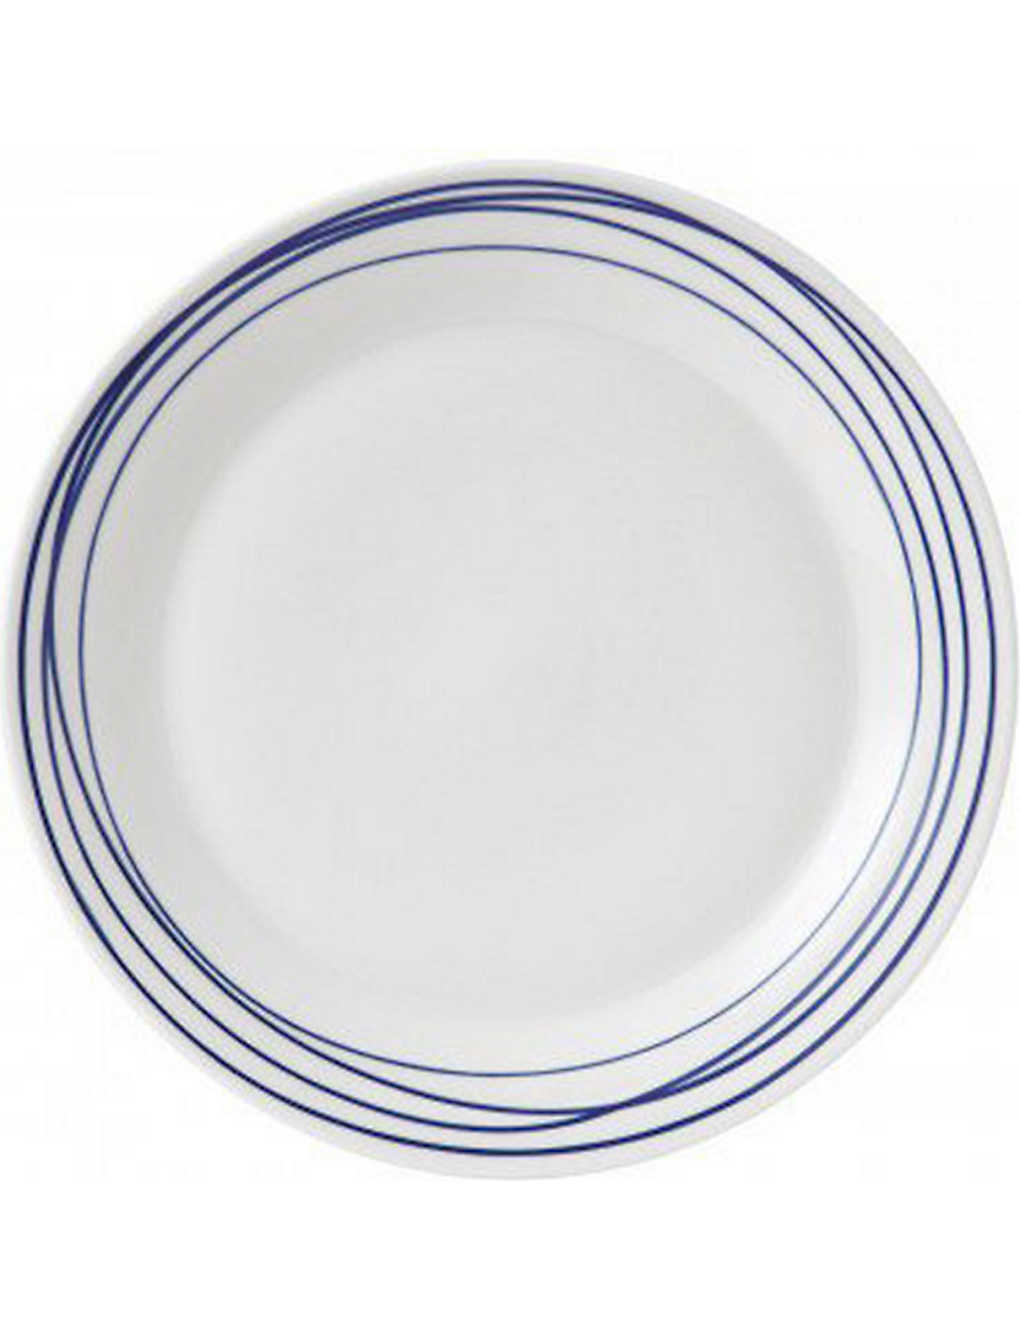 ROYAL DOULTON: Pacific Lines dinner plate 28cm